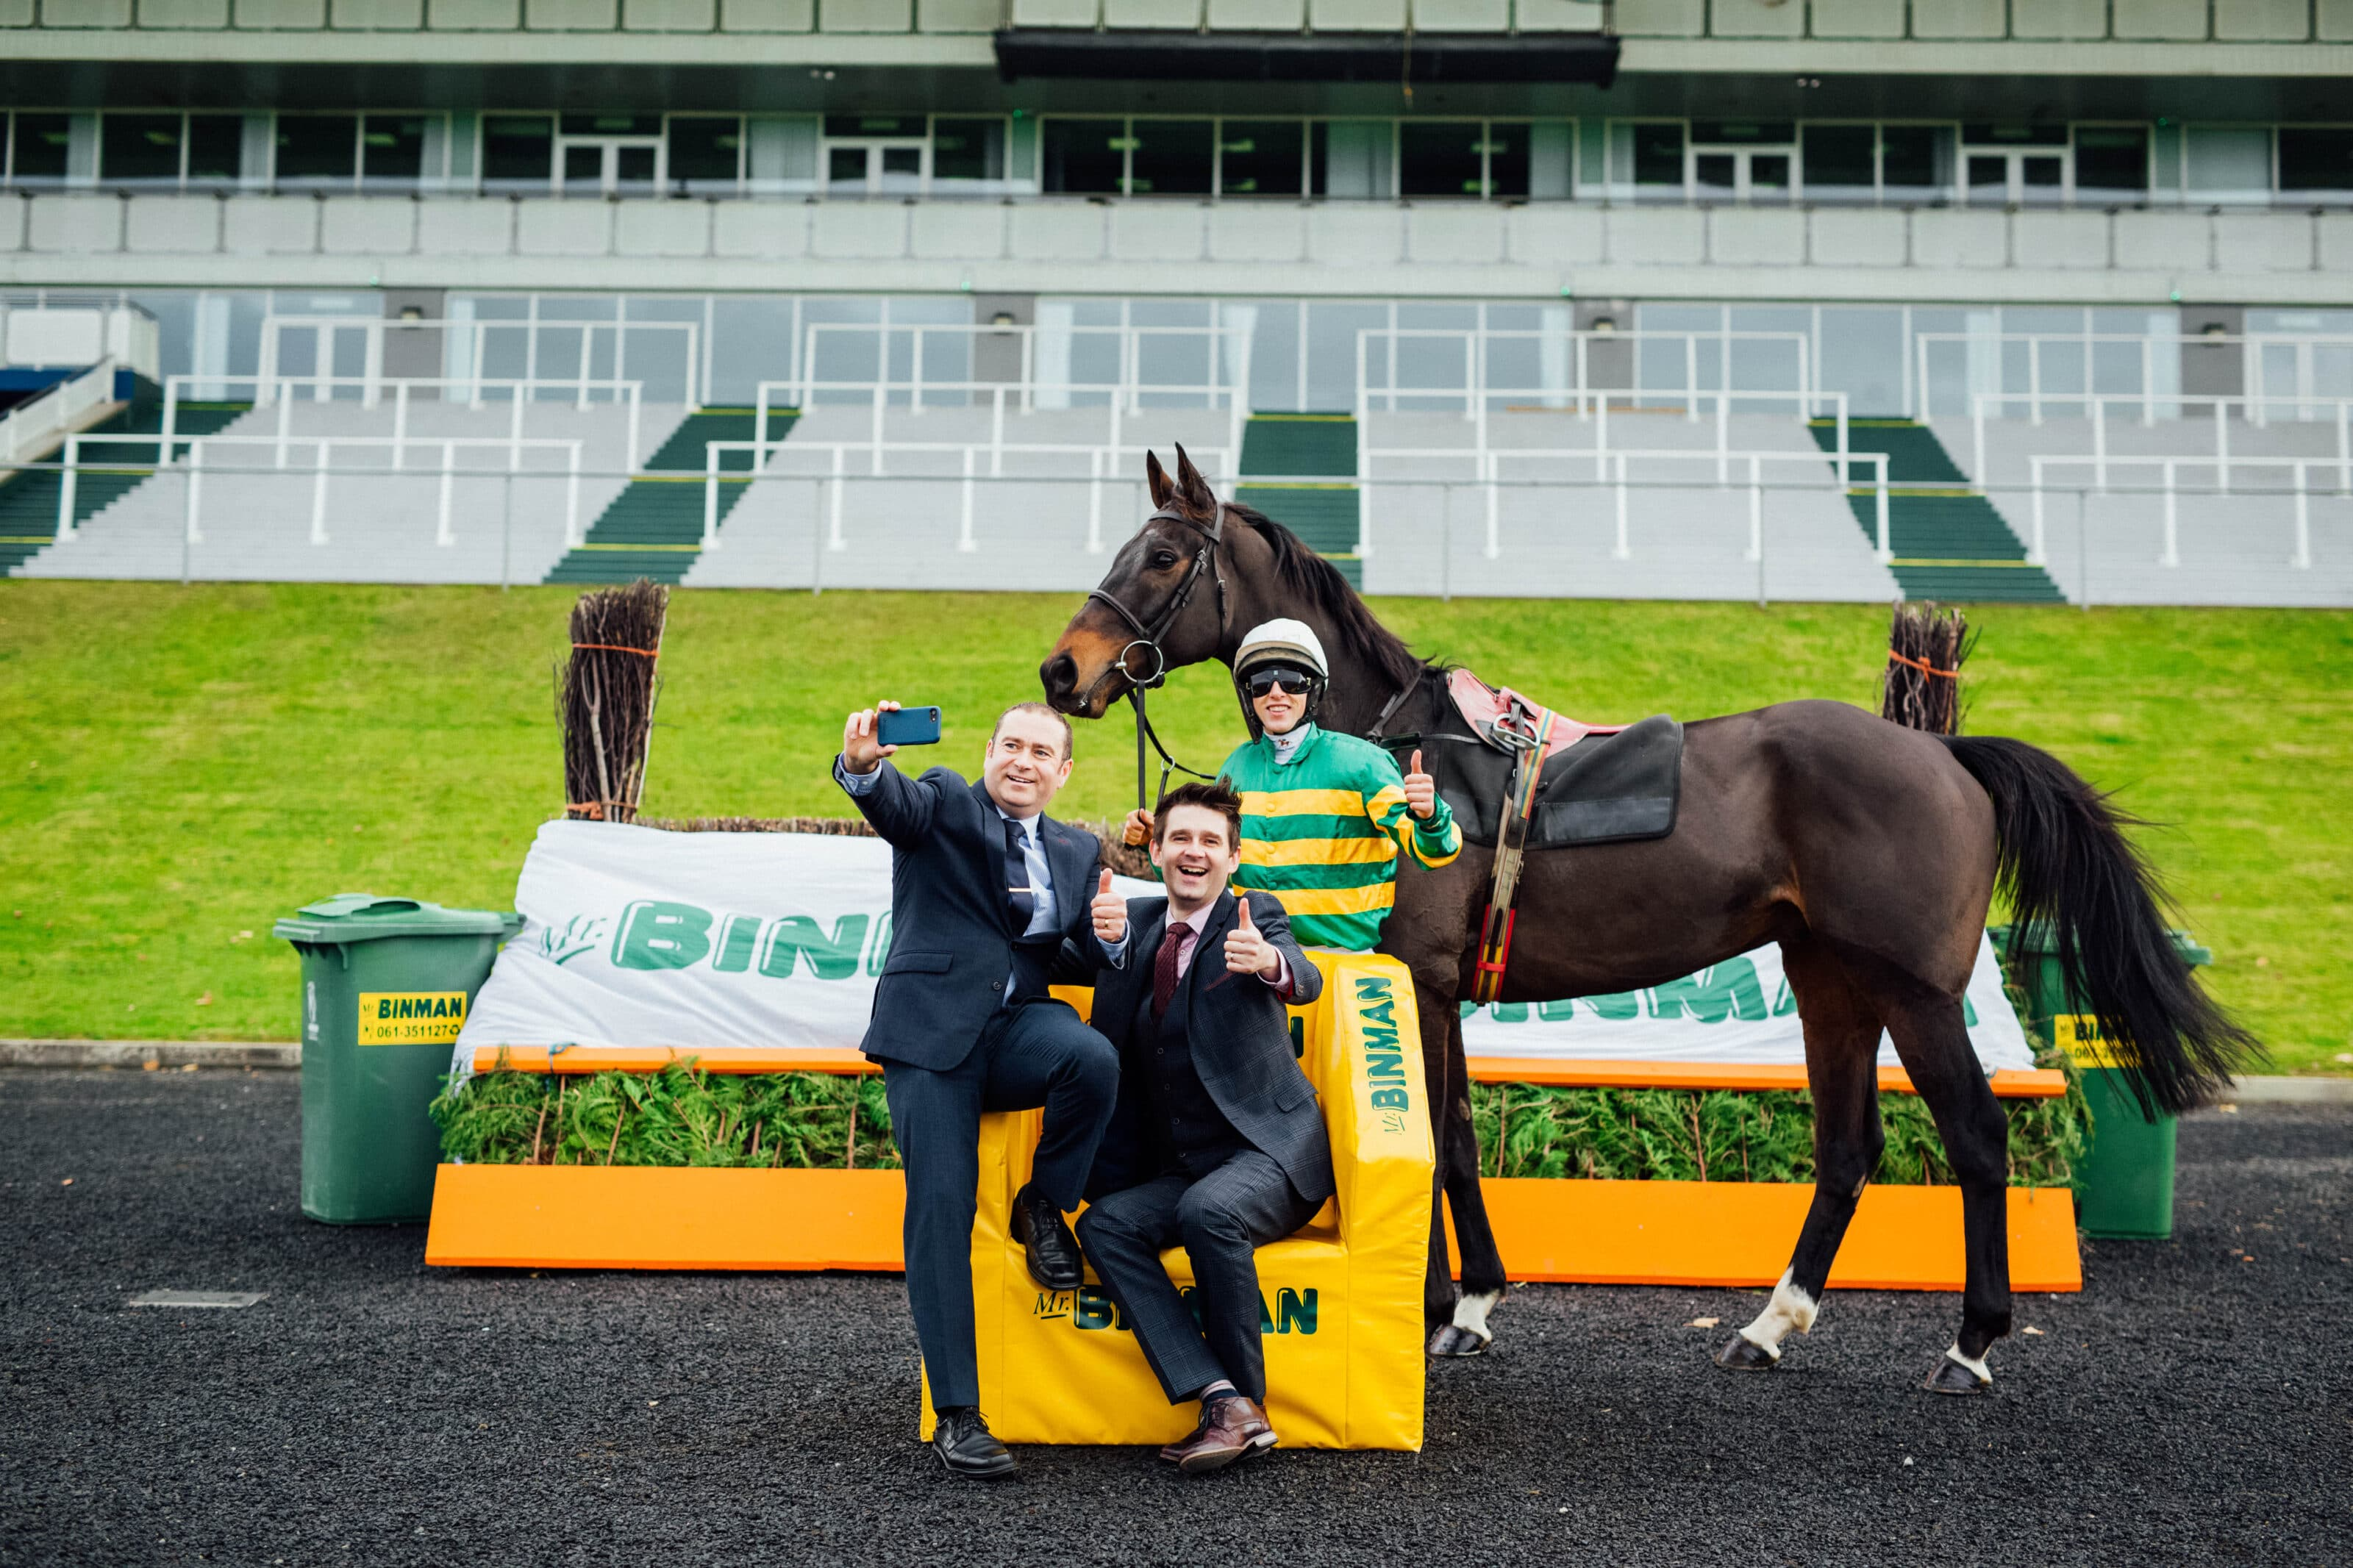 Christmas Horse Racing.Mr Binman Announced As The Title Sponsor Of The Limerick